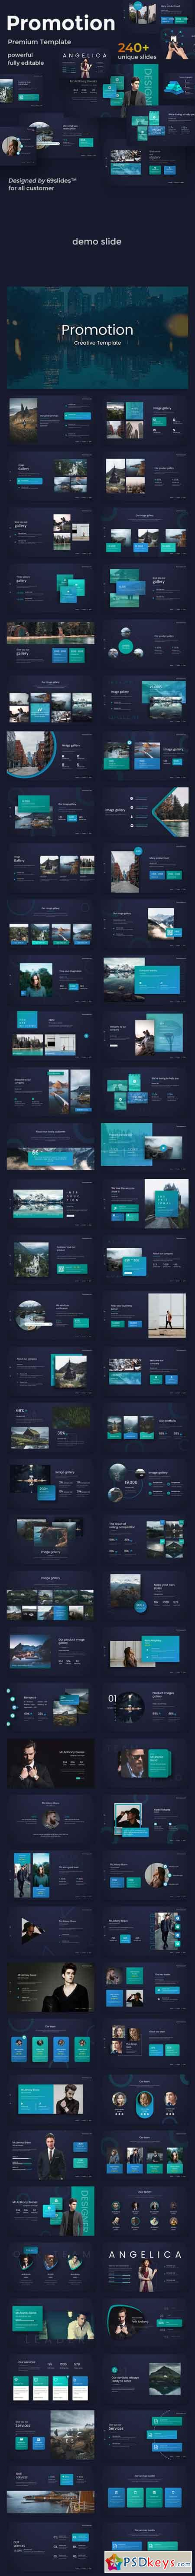 Promotion Creative Powerpoint Template 23059094